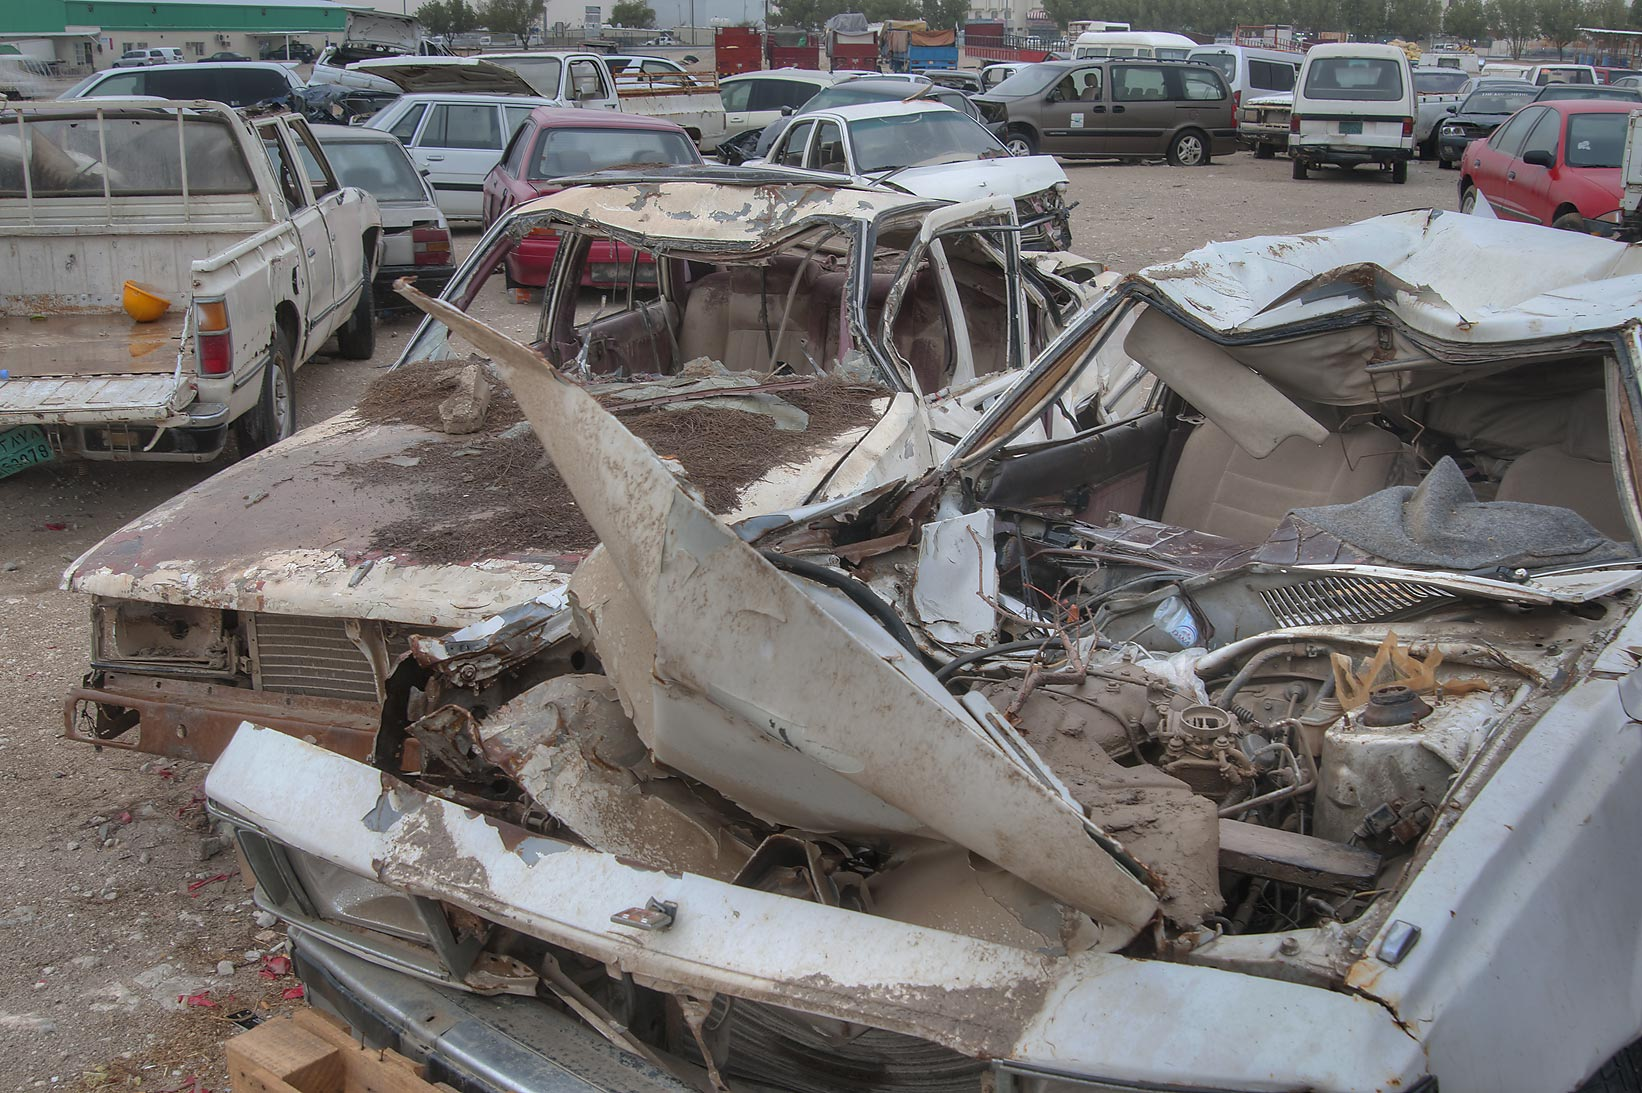 Wrecked cars near Al Mamoura Traffic Police and...Wholesale Markets area. Doha, Qatar